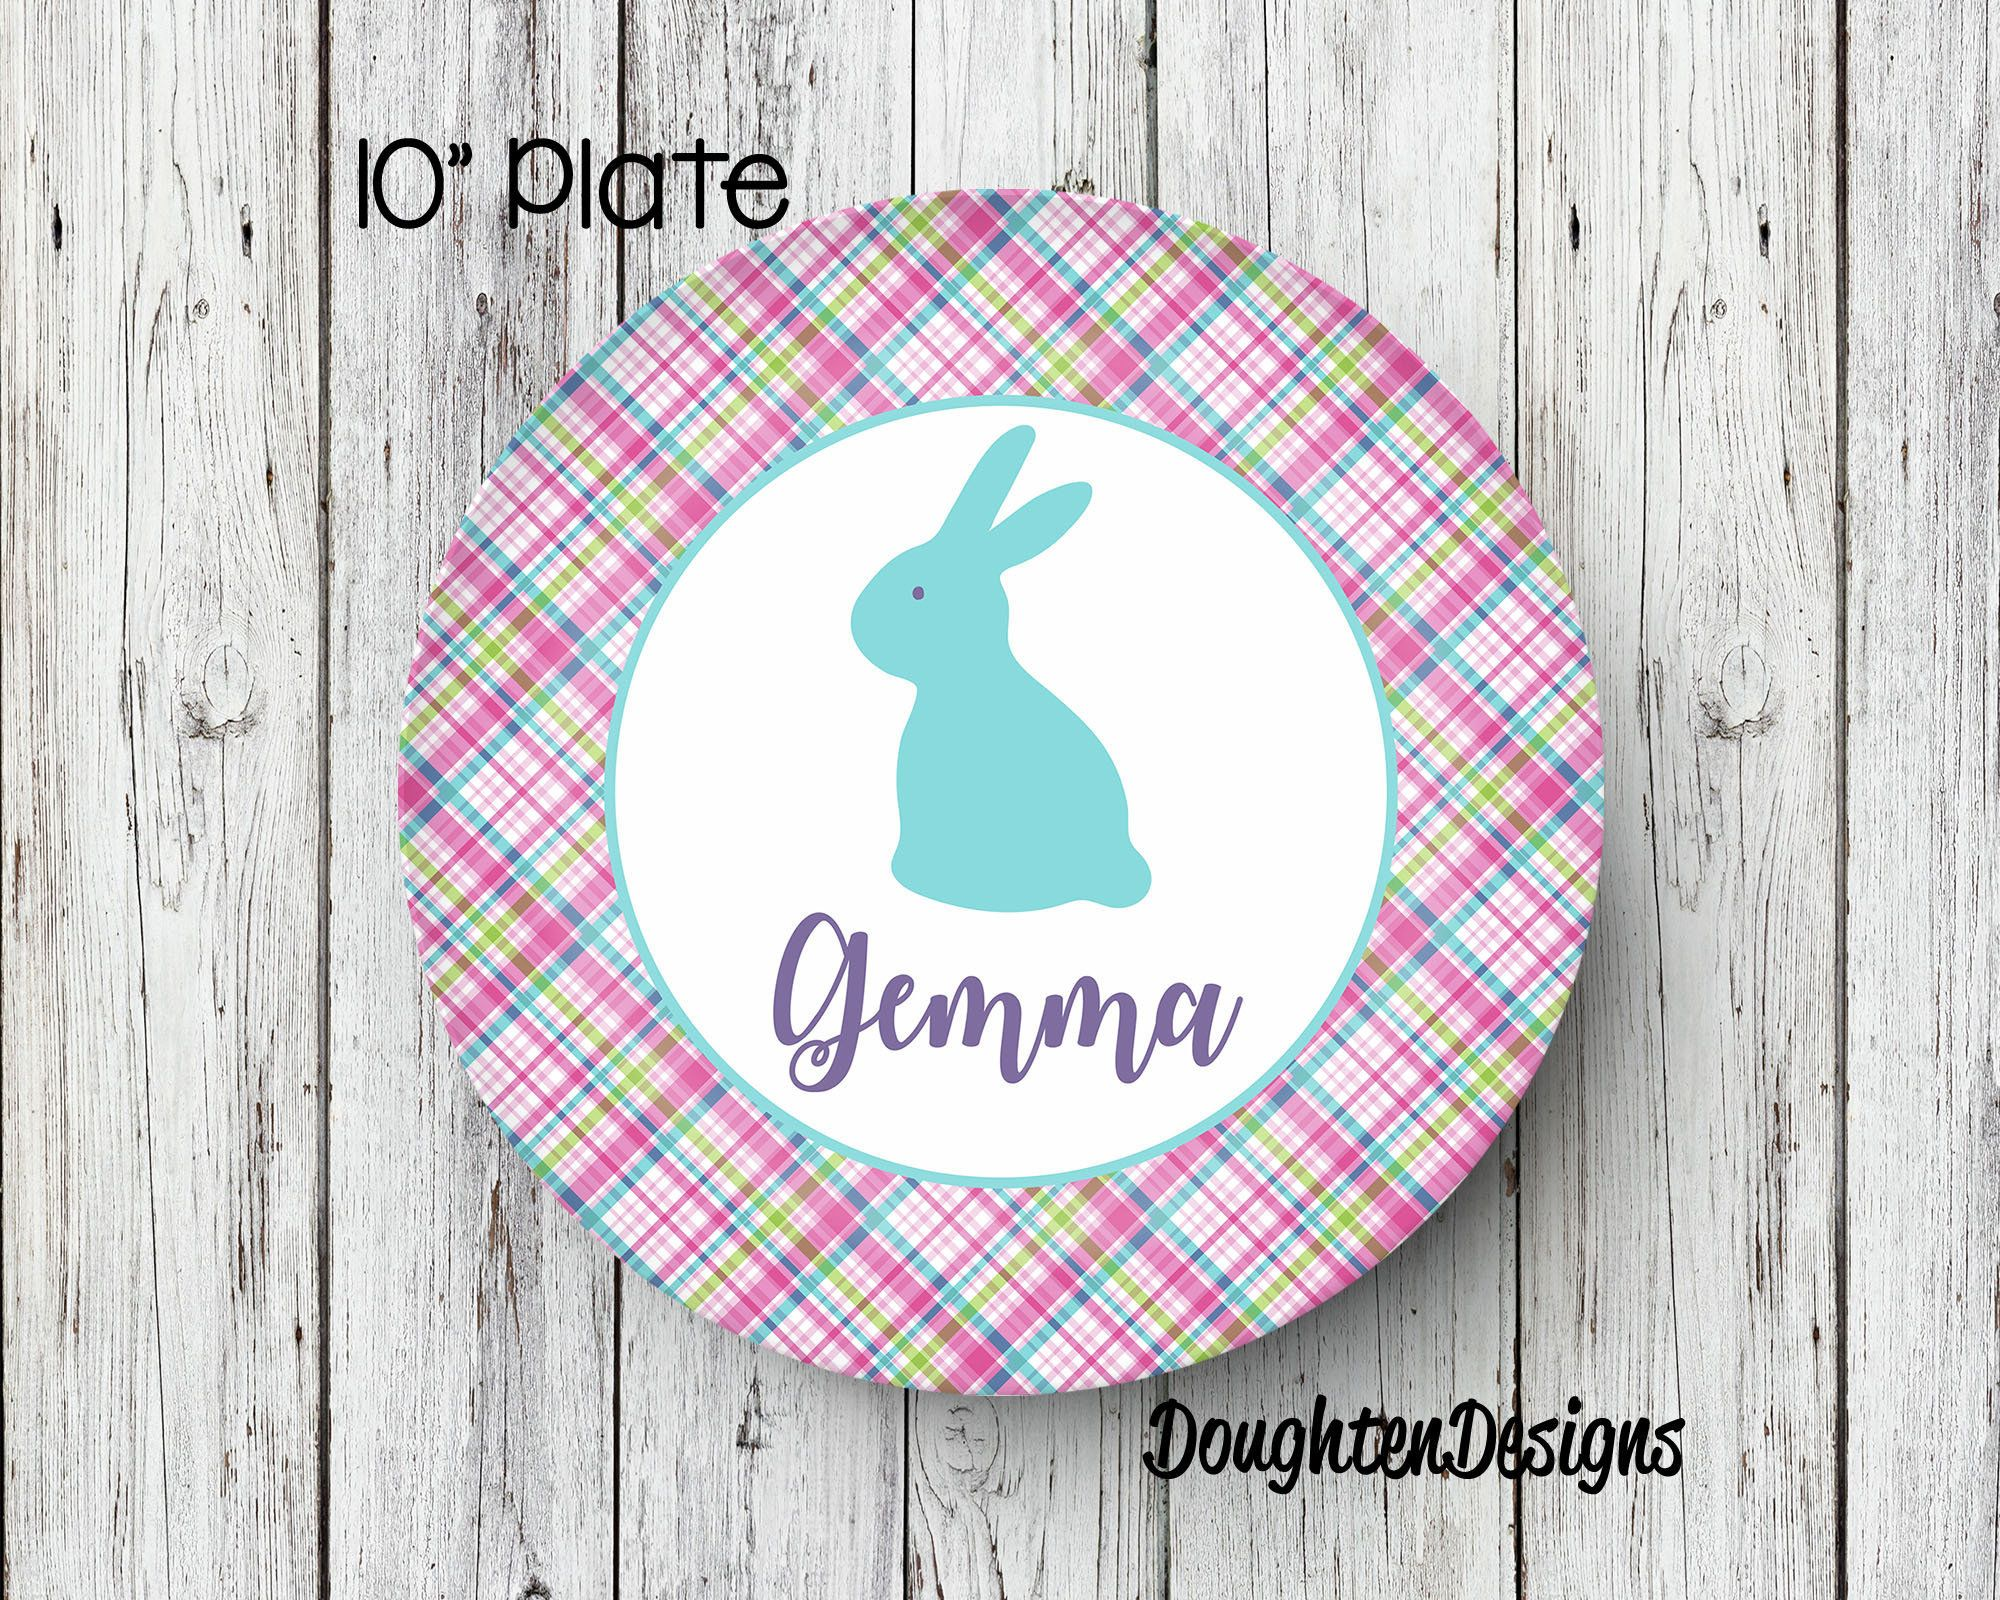 Easter Plate Personalized Melamine Plate Personalized Easter Plate boy Plate Bunny Plate  sc 1 st  Pinterest & Easter Plate Personalized Melamine Plate Personalized Easter Plate ...